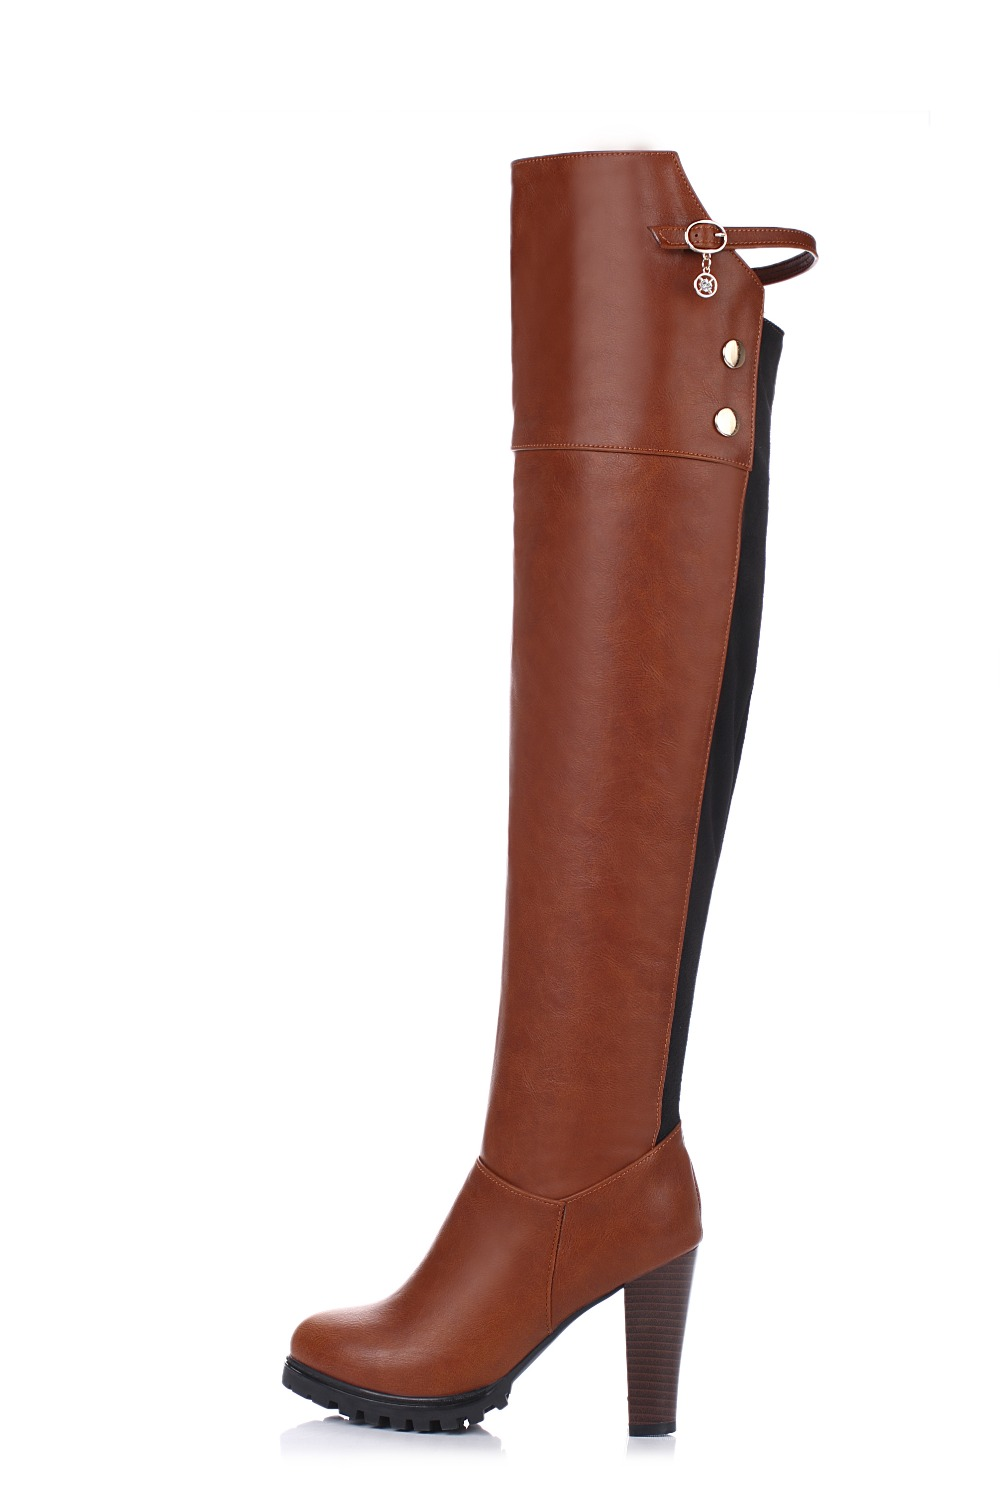 ФОТО New Design Women Over-Knee Boots Round Toe Spike Heels Winter Boots Elegant Brown Red Shoes Woman Plus Size 3.5-13